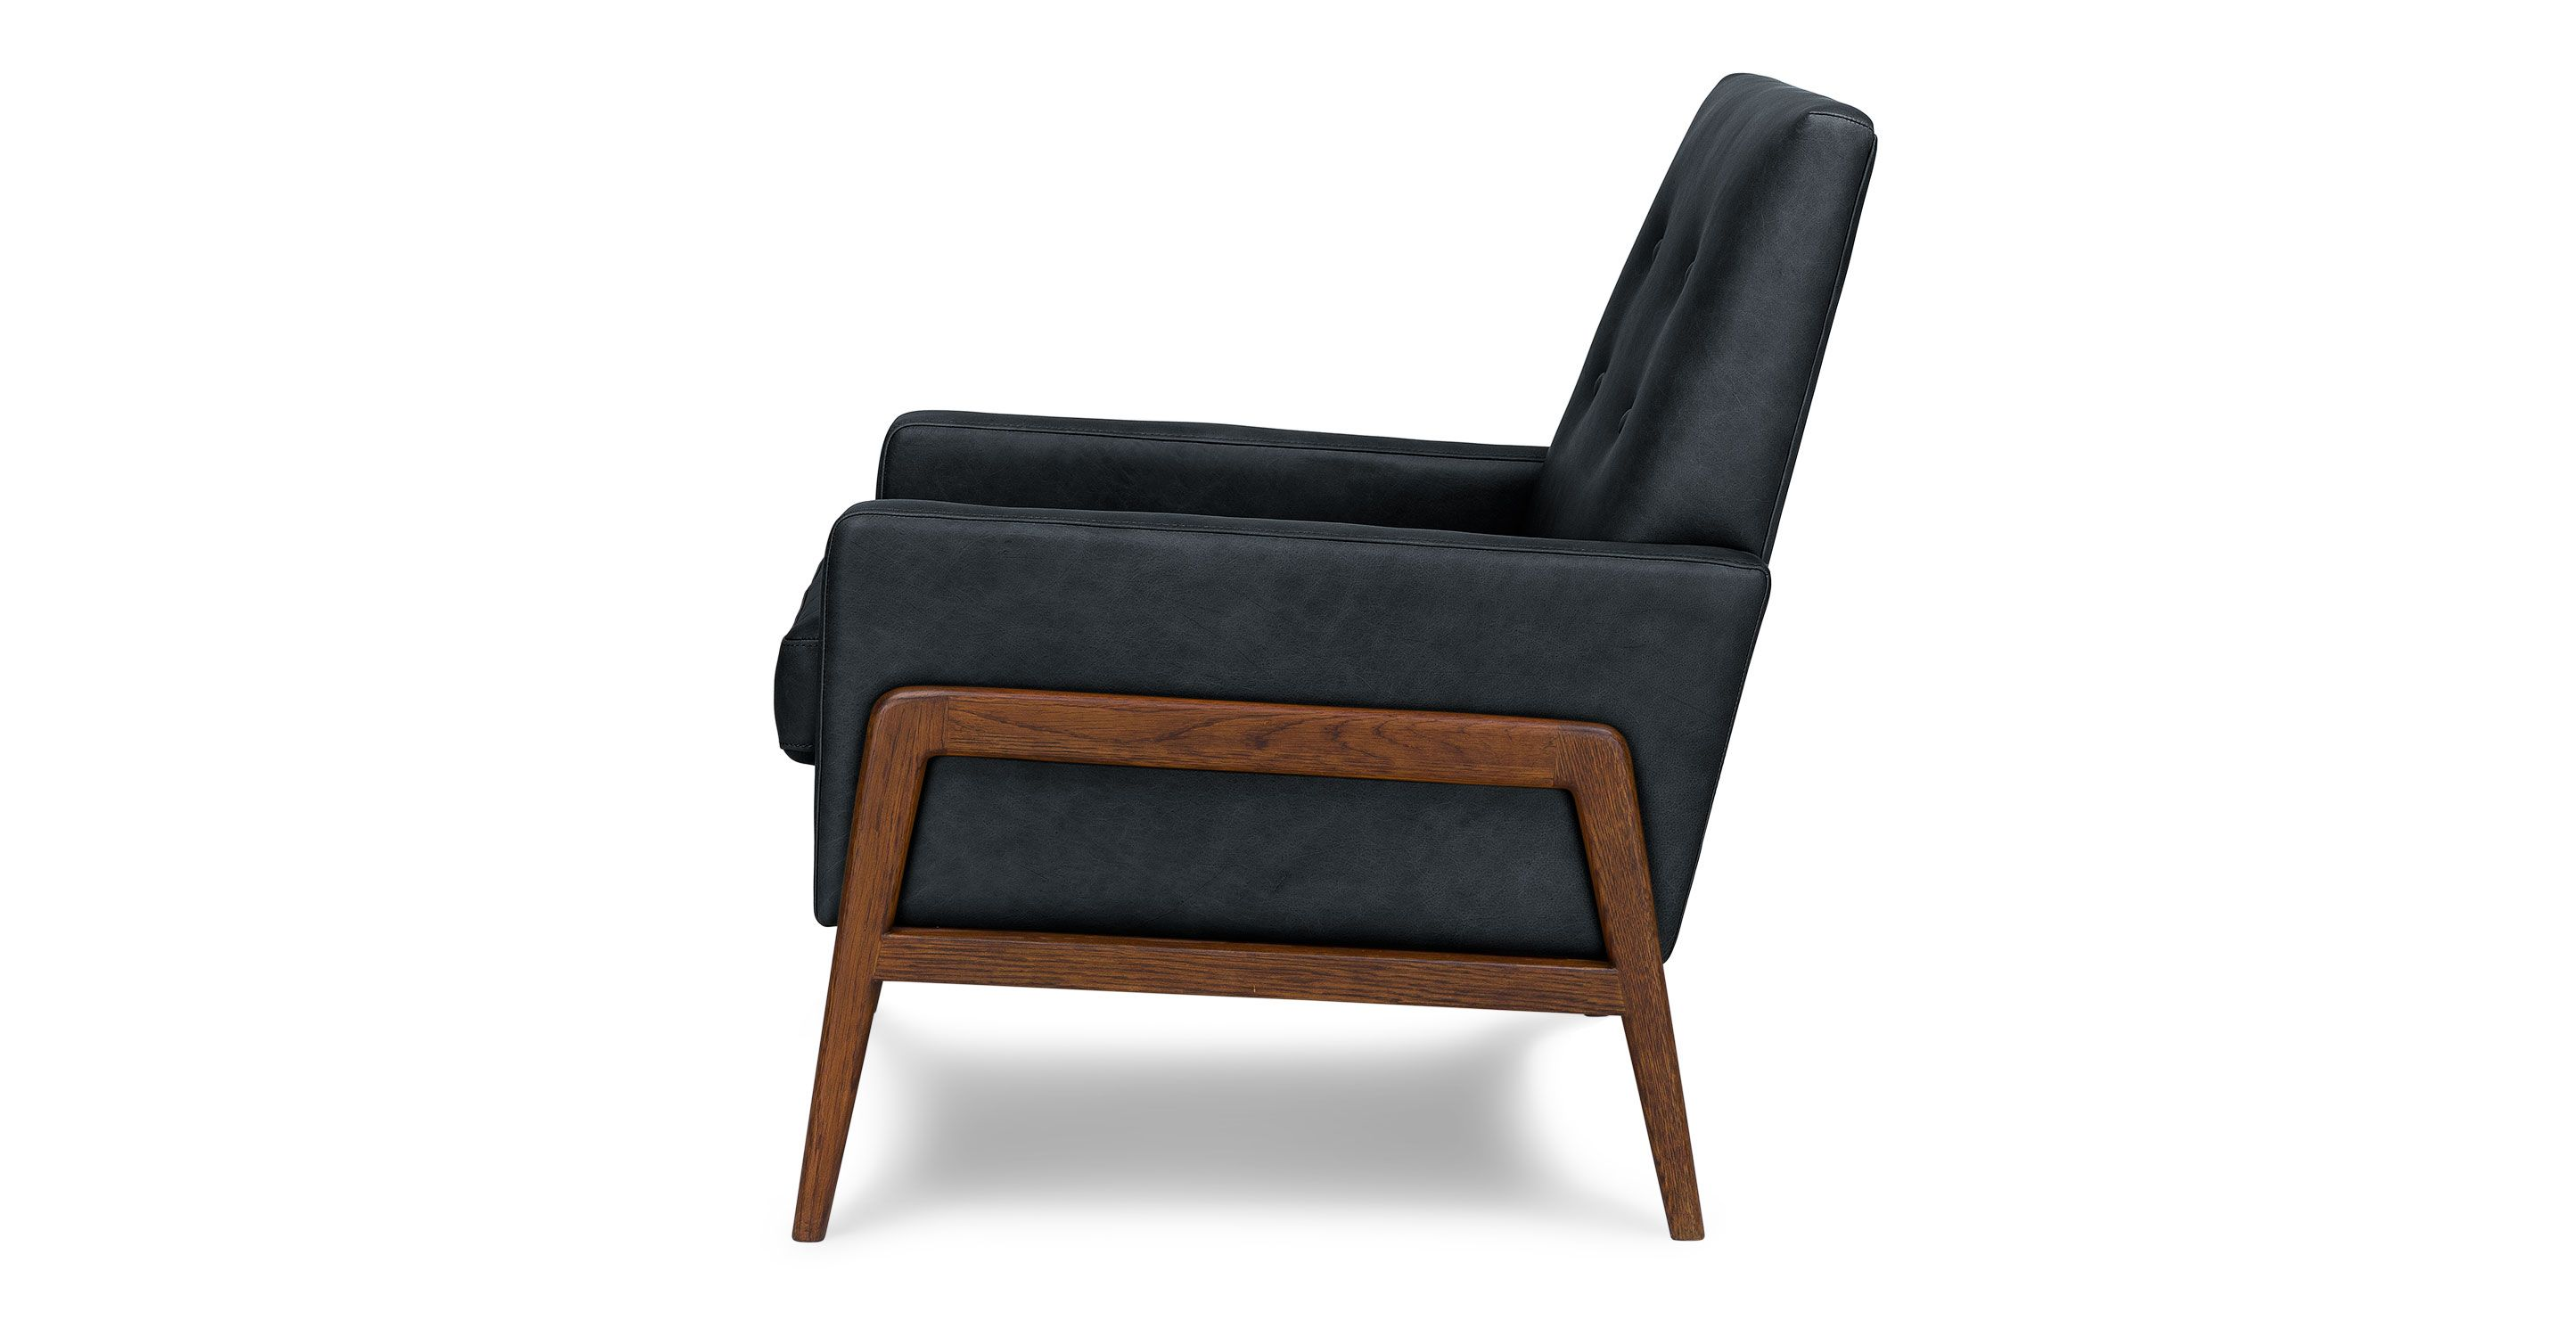 at style sofa mid for century los modern and furniture your files shocking sale shine design appealing stand the angeles pic tv furnishing couches couch of sectional